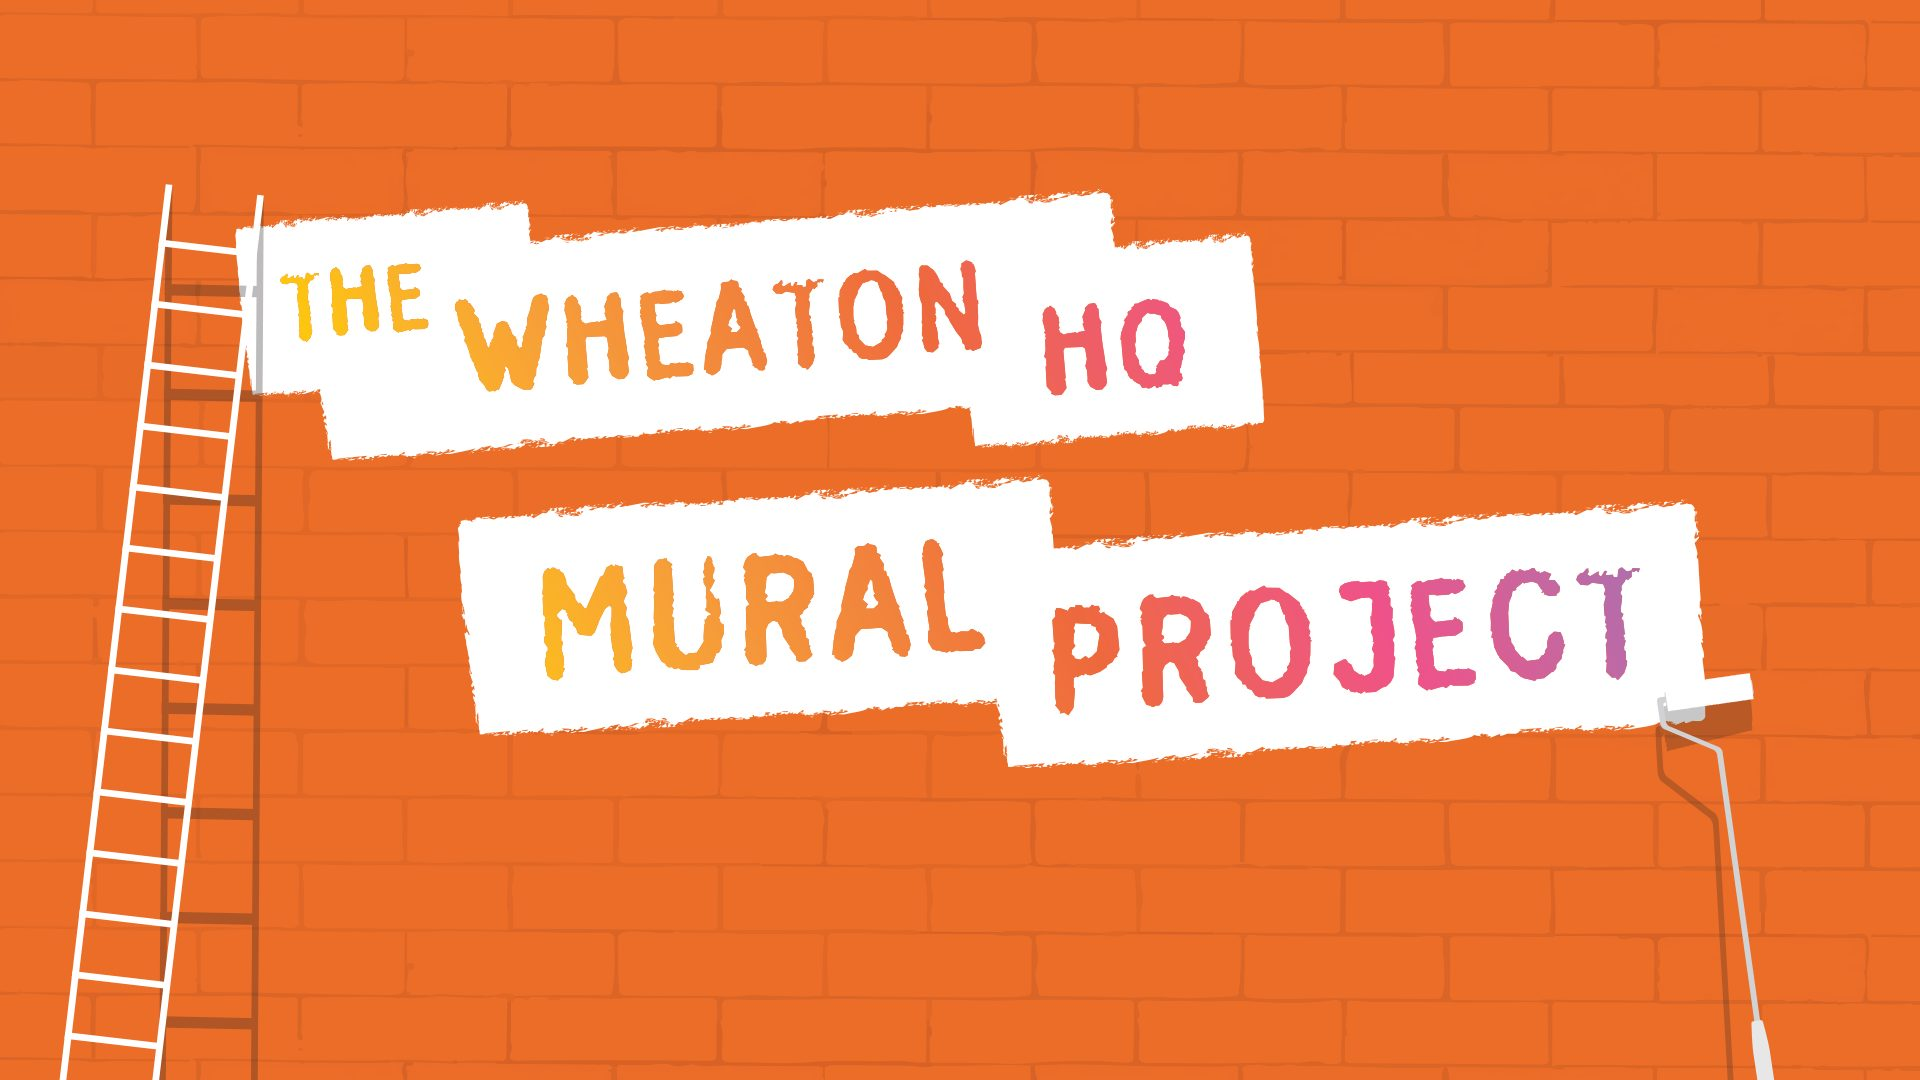 Orange brick wall with ladder and paint roller. Text: The Wheaton HQ Mural Project